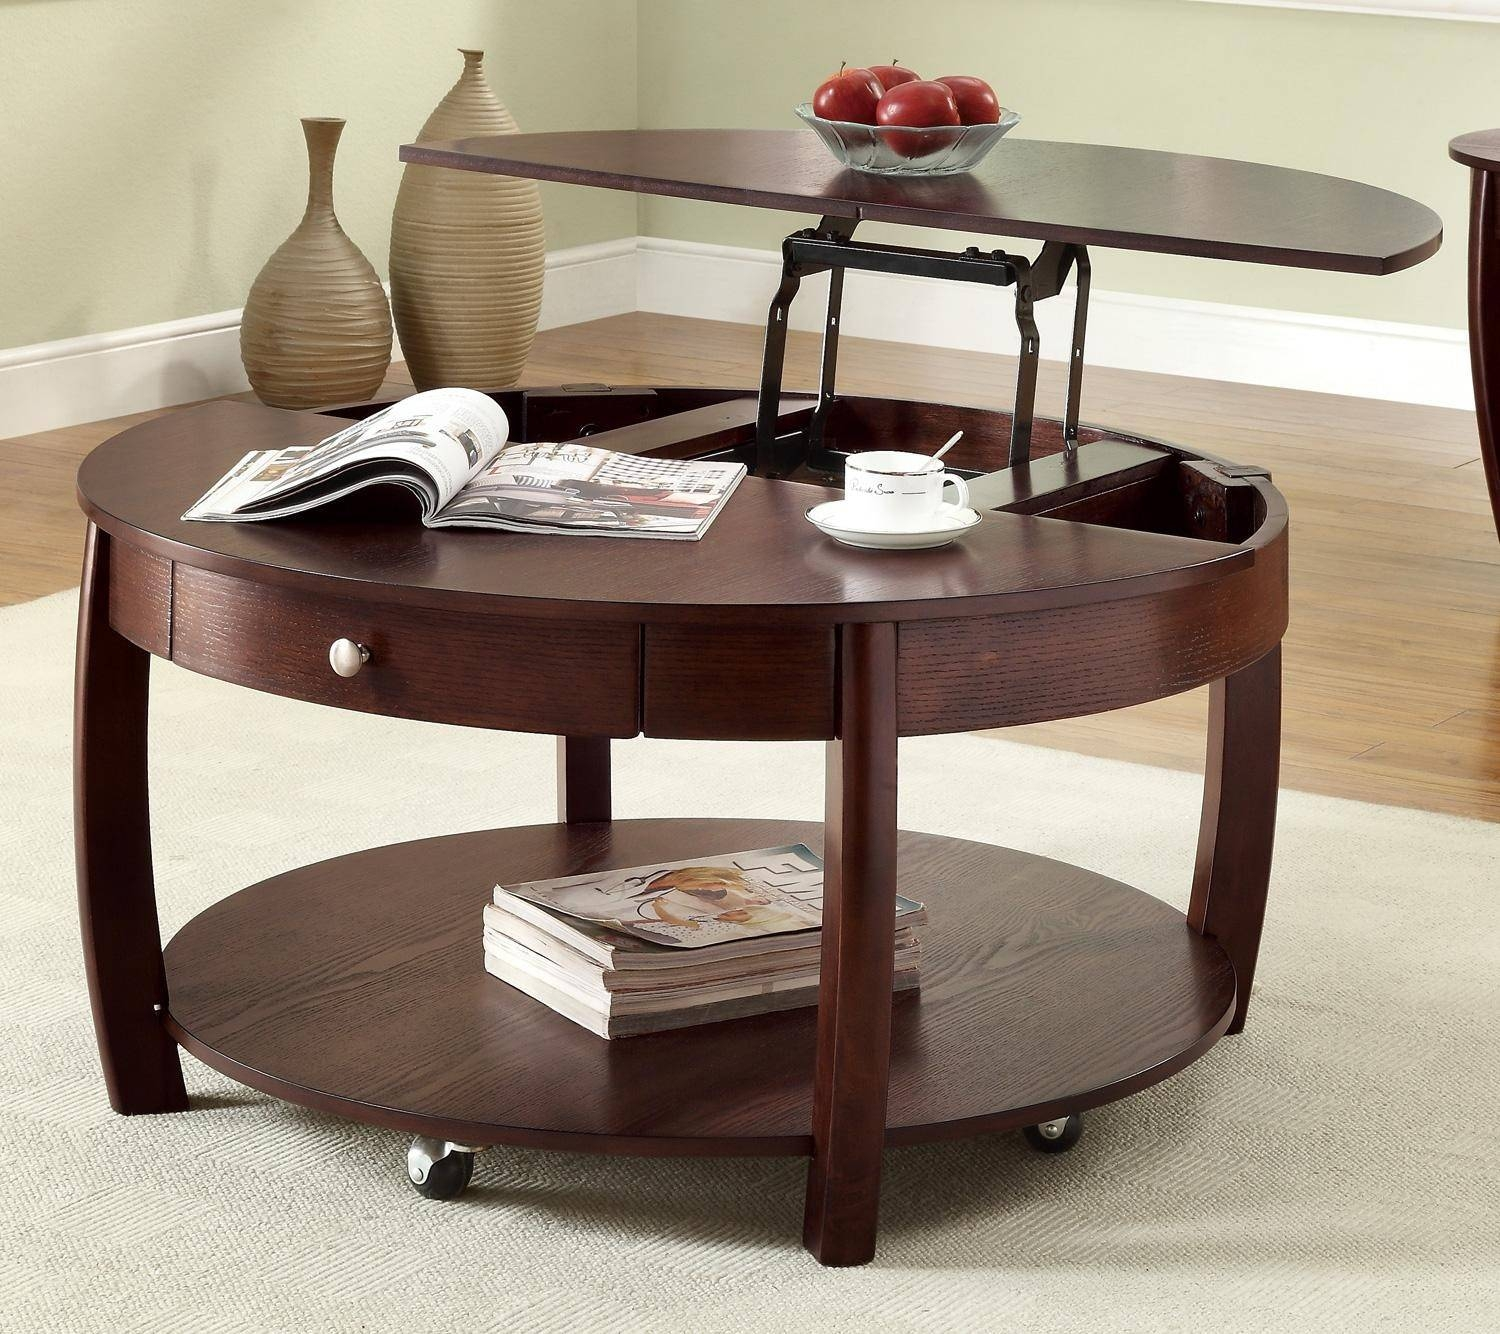 Lift Top Coffee Table Ideas And Designs | Designwalls regarding Glass Lift Top Coffee Tables (Image 12 of 30)